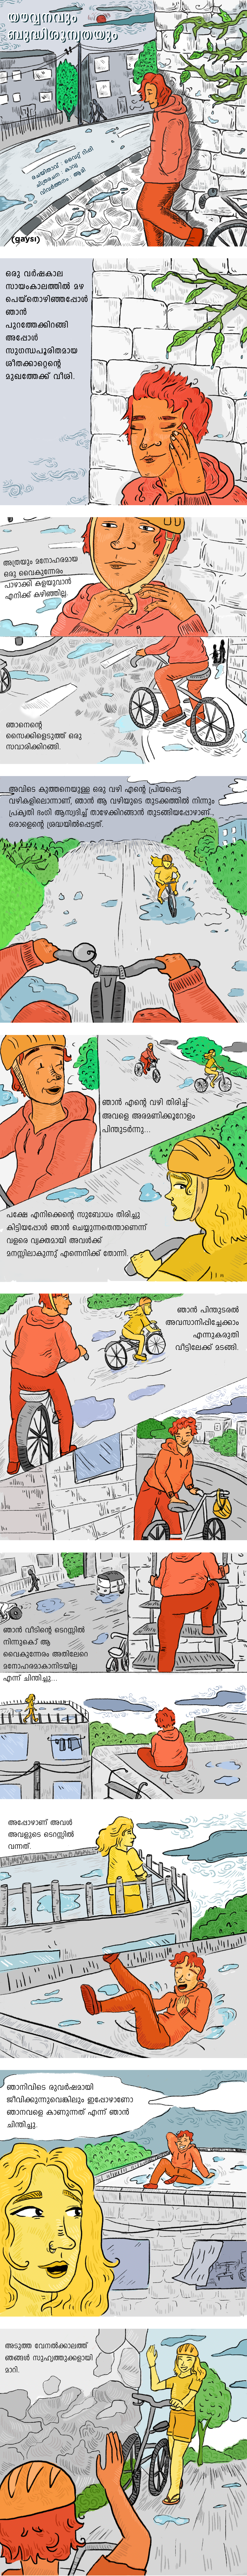 Graphic Story: Young and Foolish [In Malayalam]